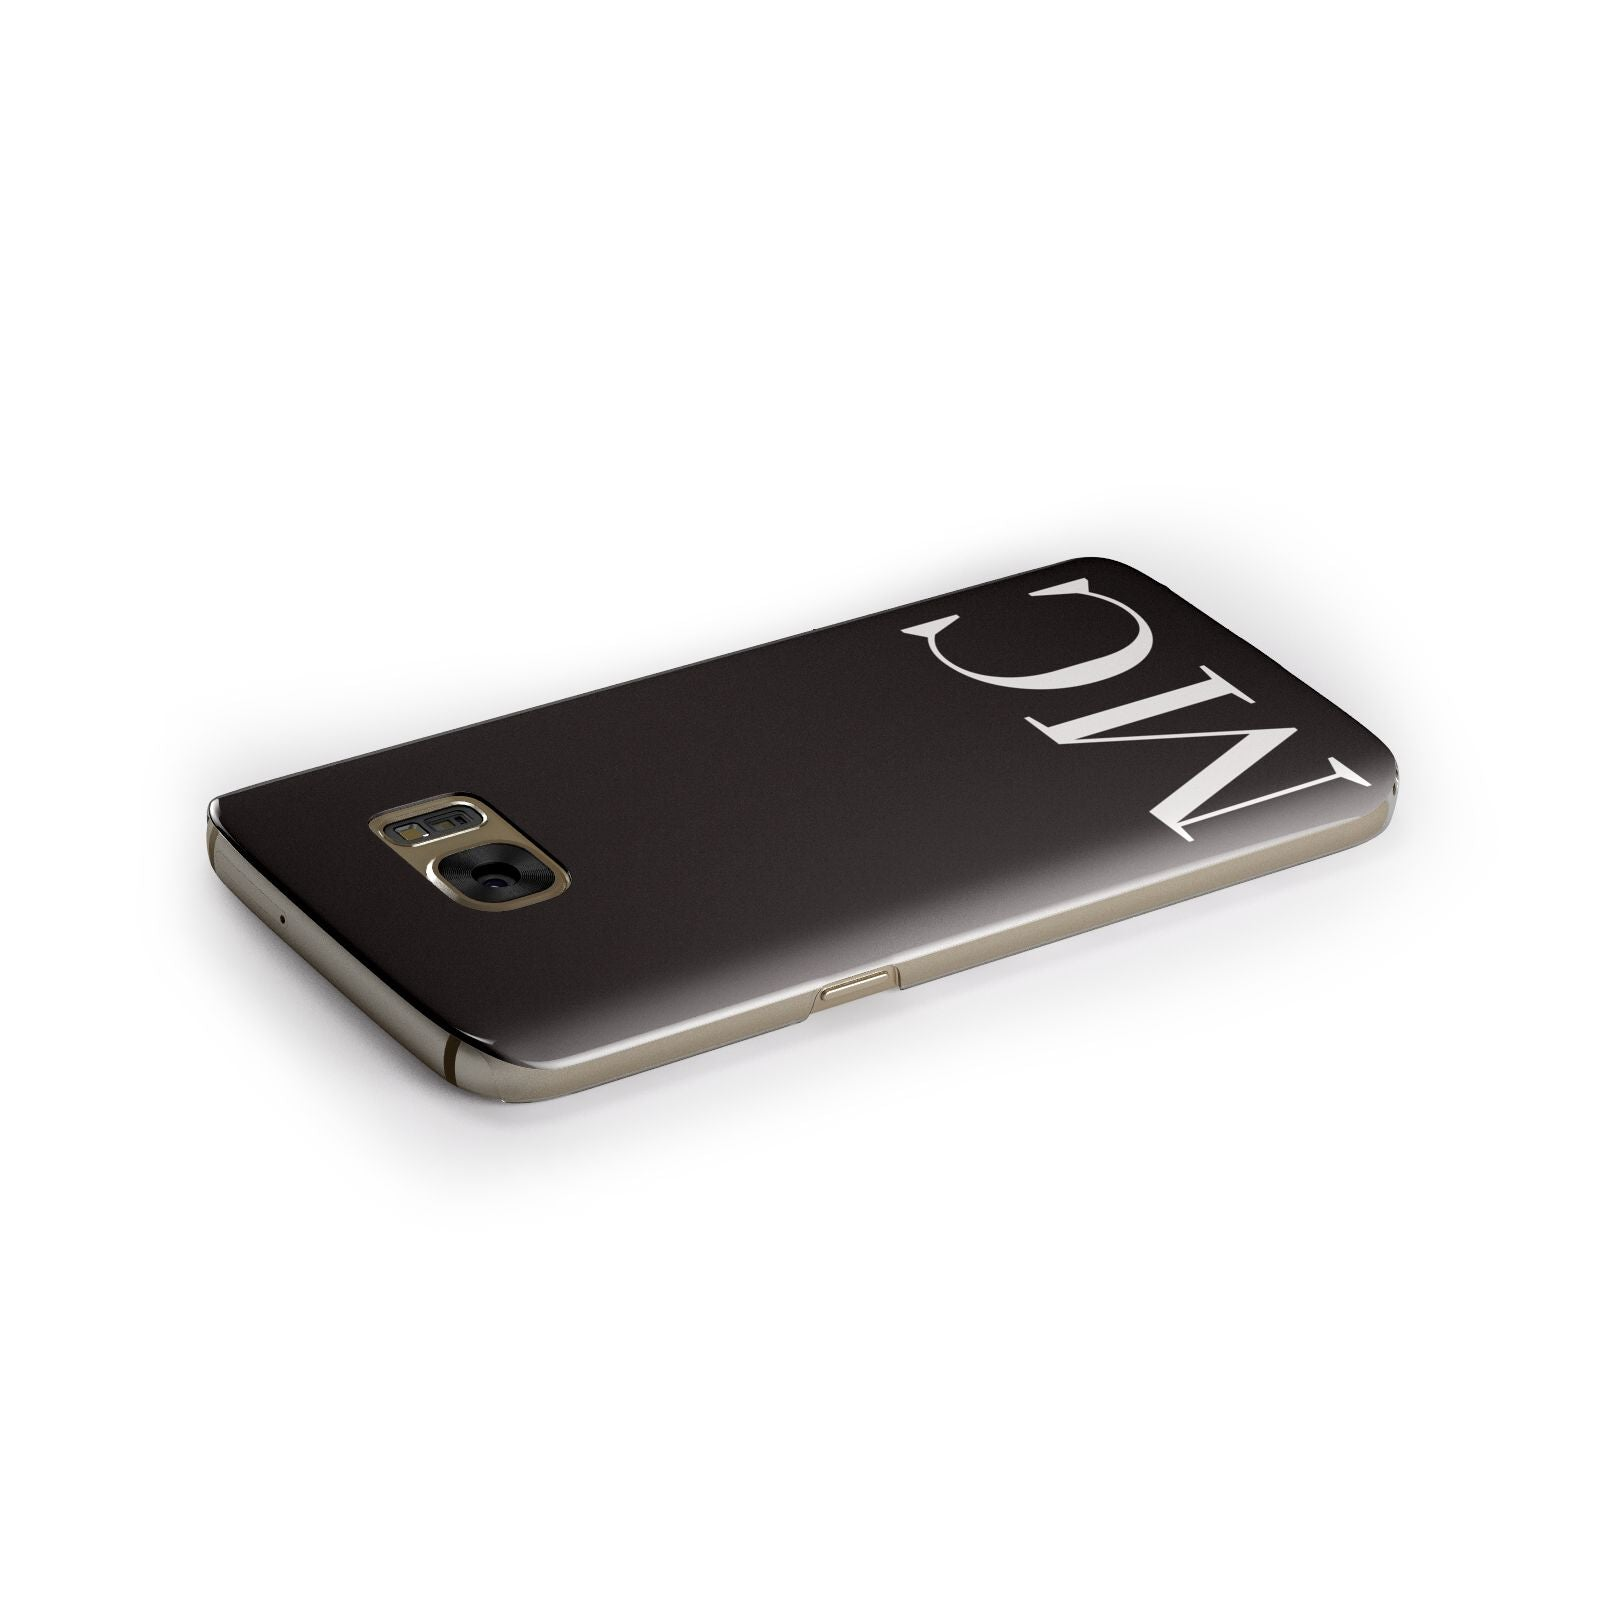 Initials Personalised 1 Samsung Galaxy Case Side Close Up